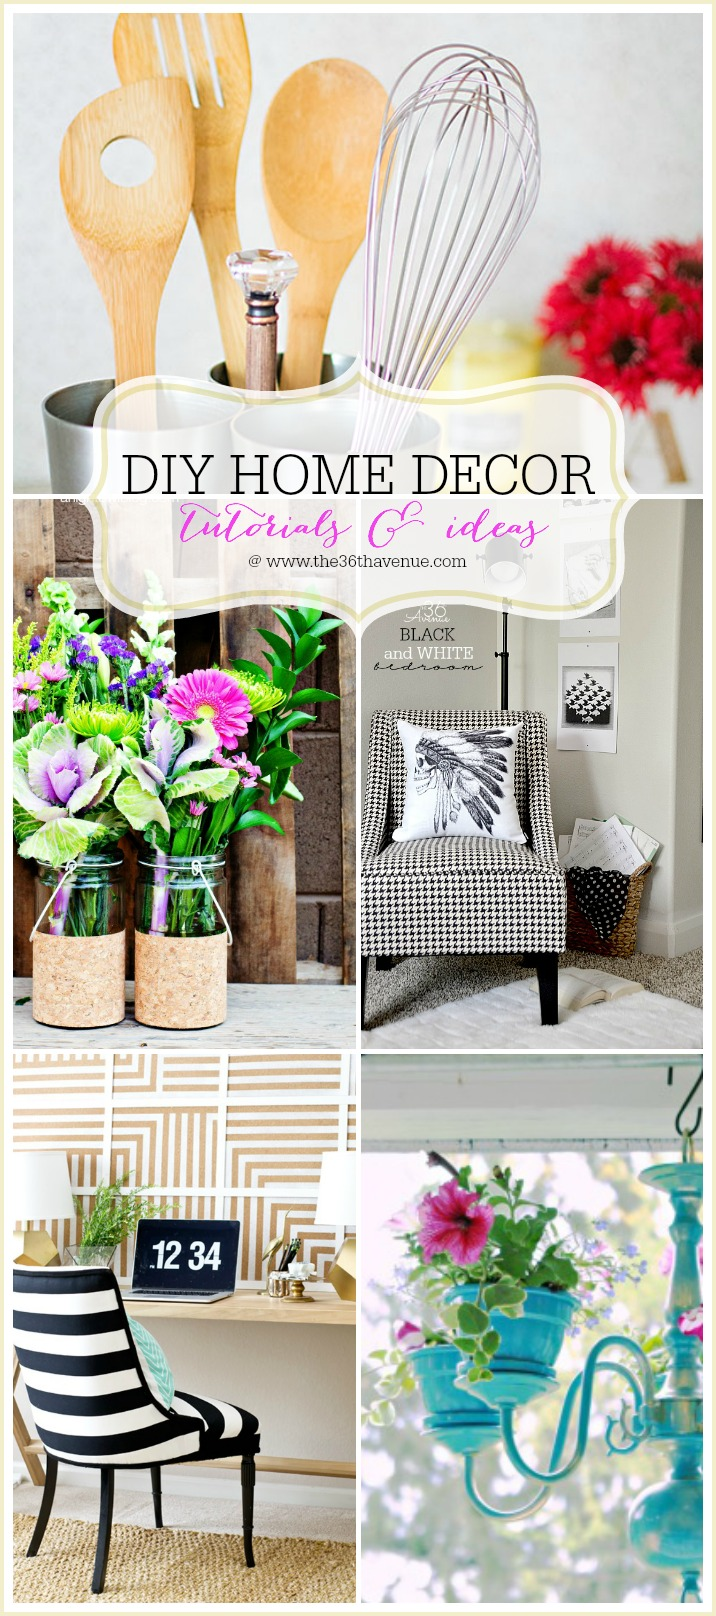 diy home decor ideas the 36th avenue home decor diy projects the 36th avenue 451